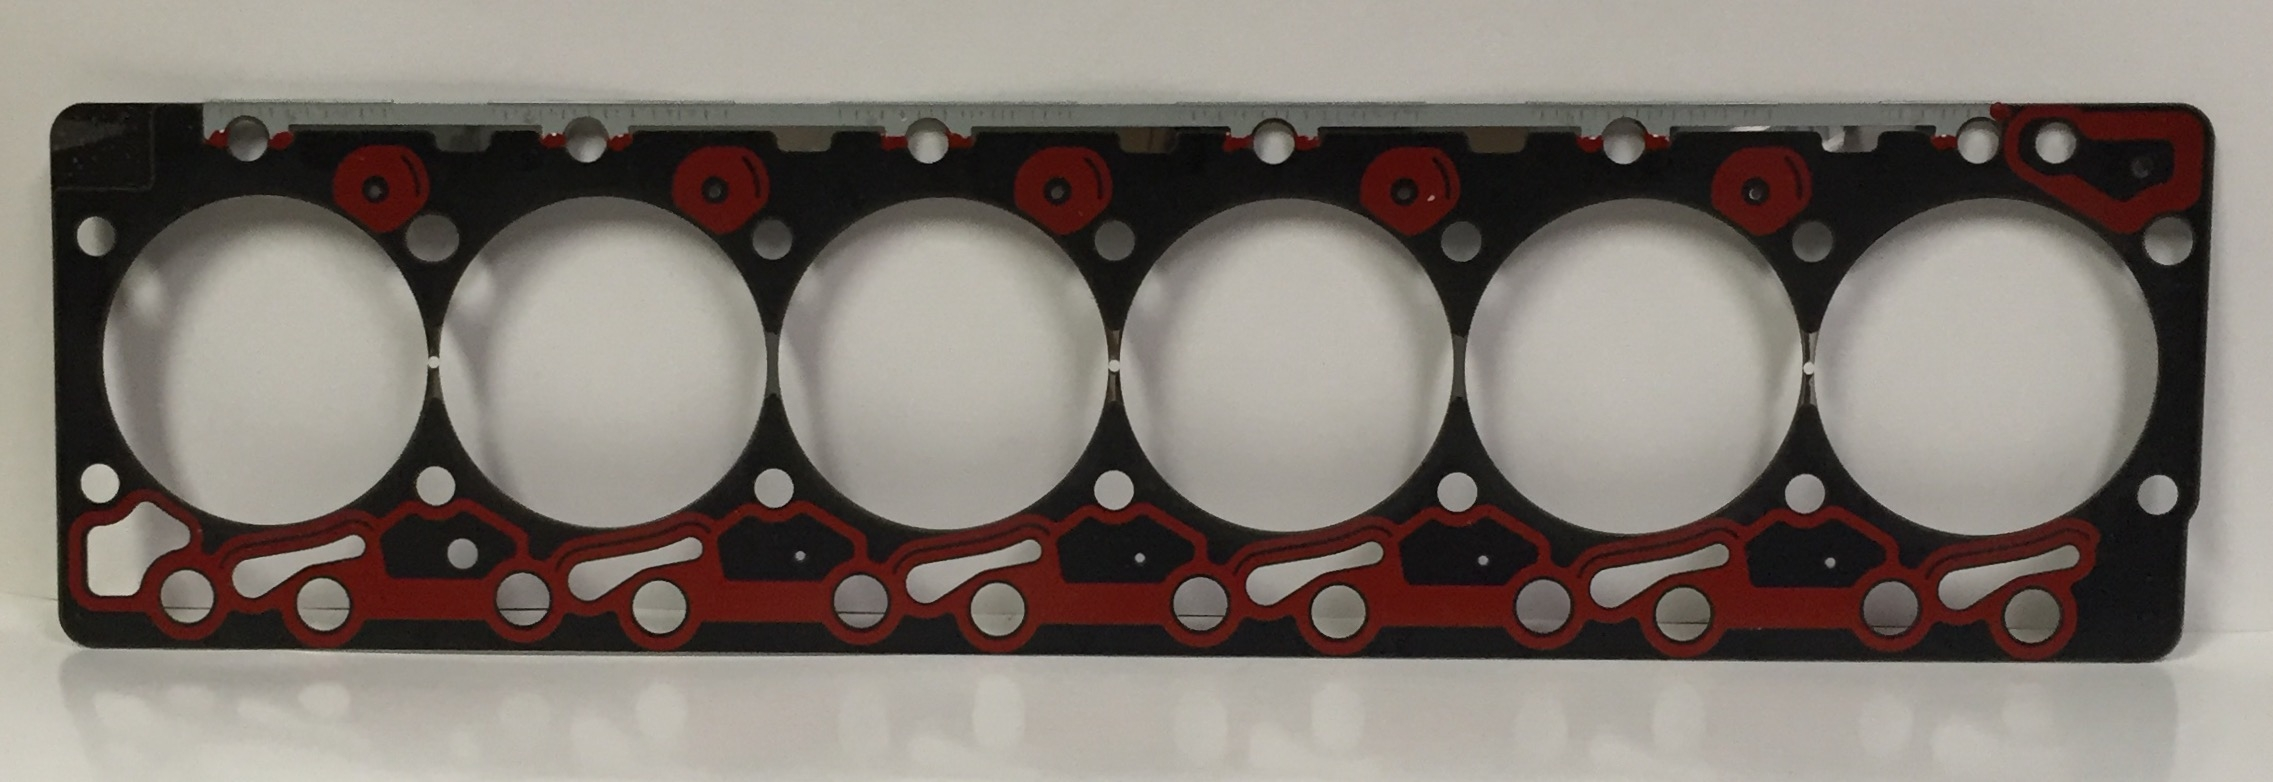 Cummins 24 Valve Custom Head Gasket